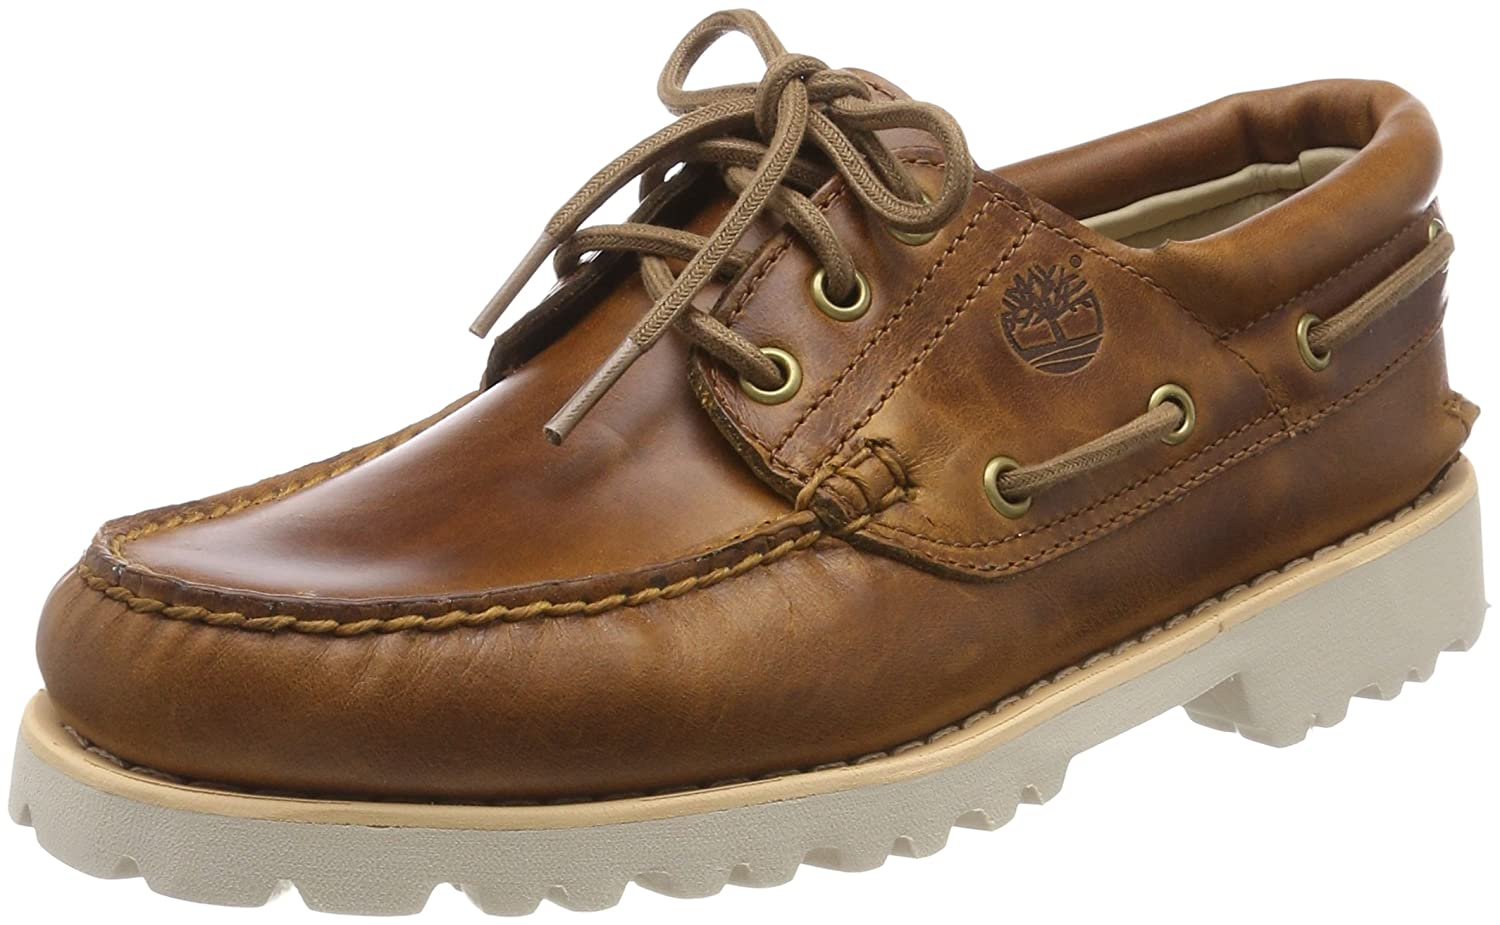 9fb501b66ed Timberland Men's Chilmark 3 Eye Hands Leather Boat Shoes, Brown, 7.5 ...